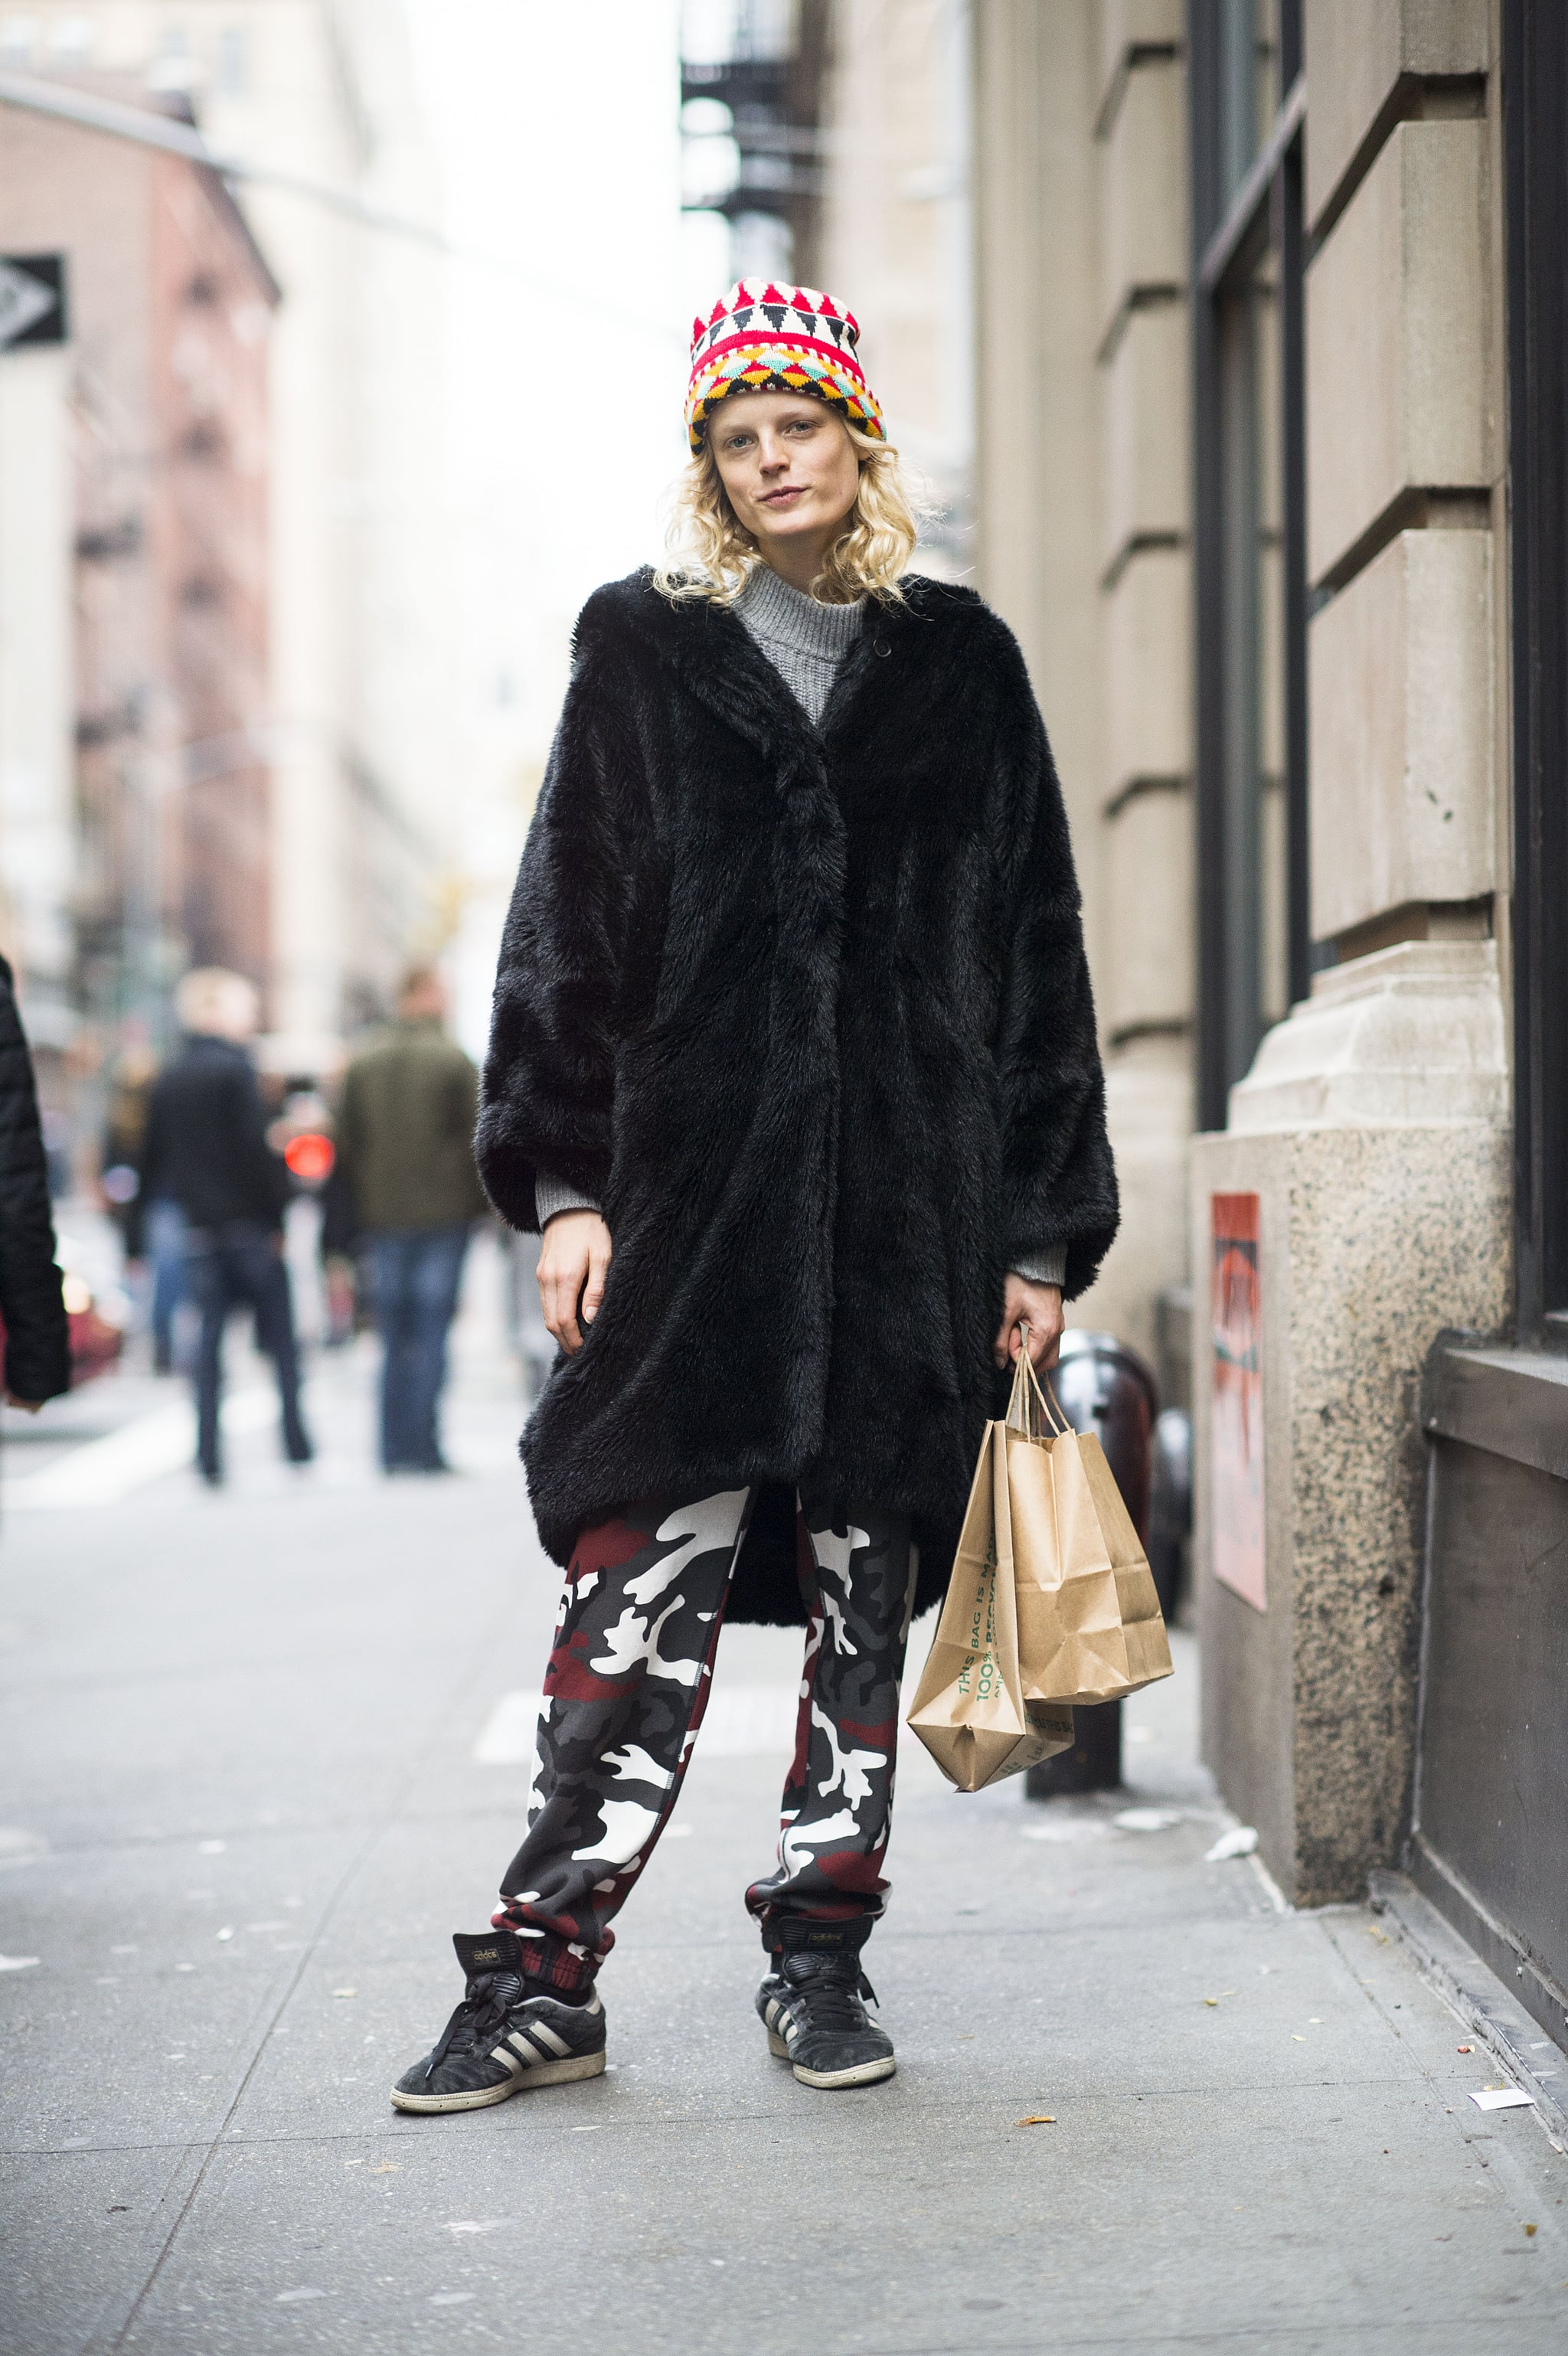 Hanne Gaby Odiele stayed spunky with camo-print pants, an oversize fur, and a bright beanie. Source: Le 21ème | Adam Katz Sinding